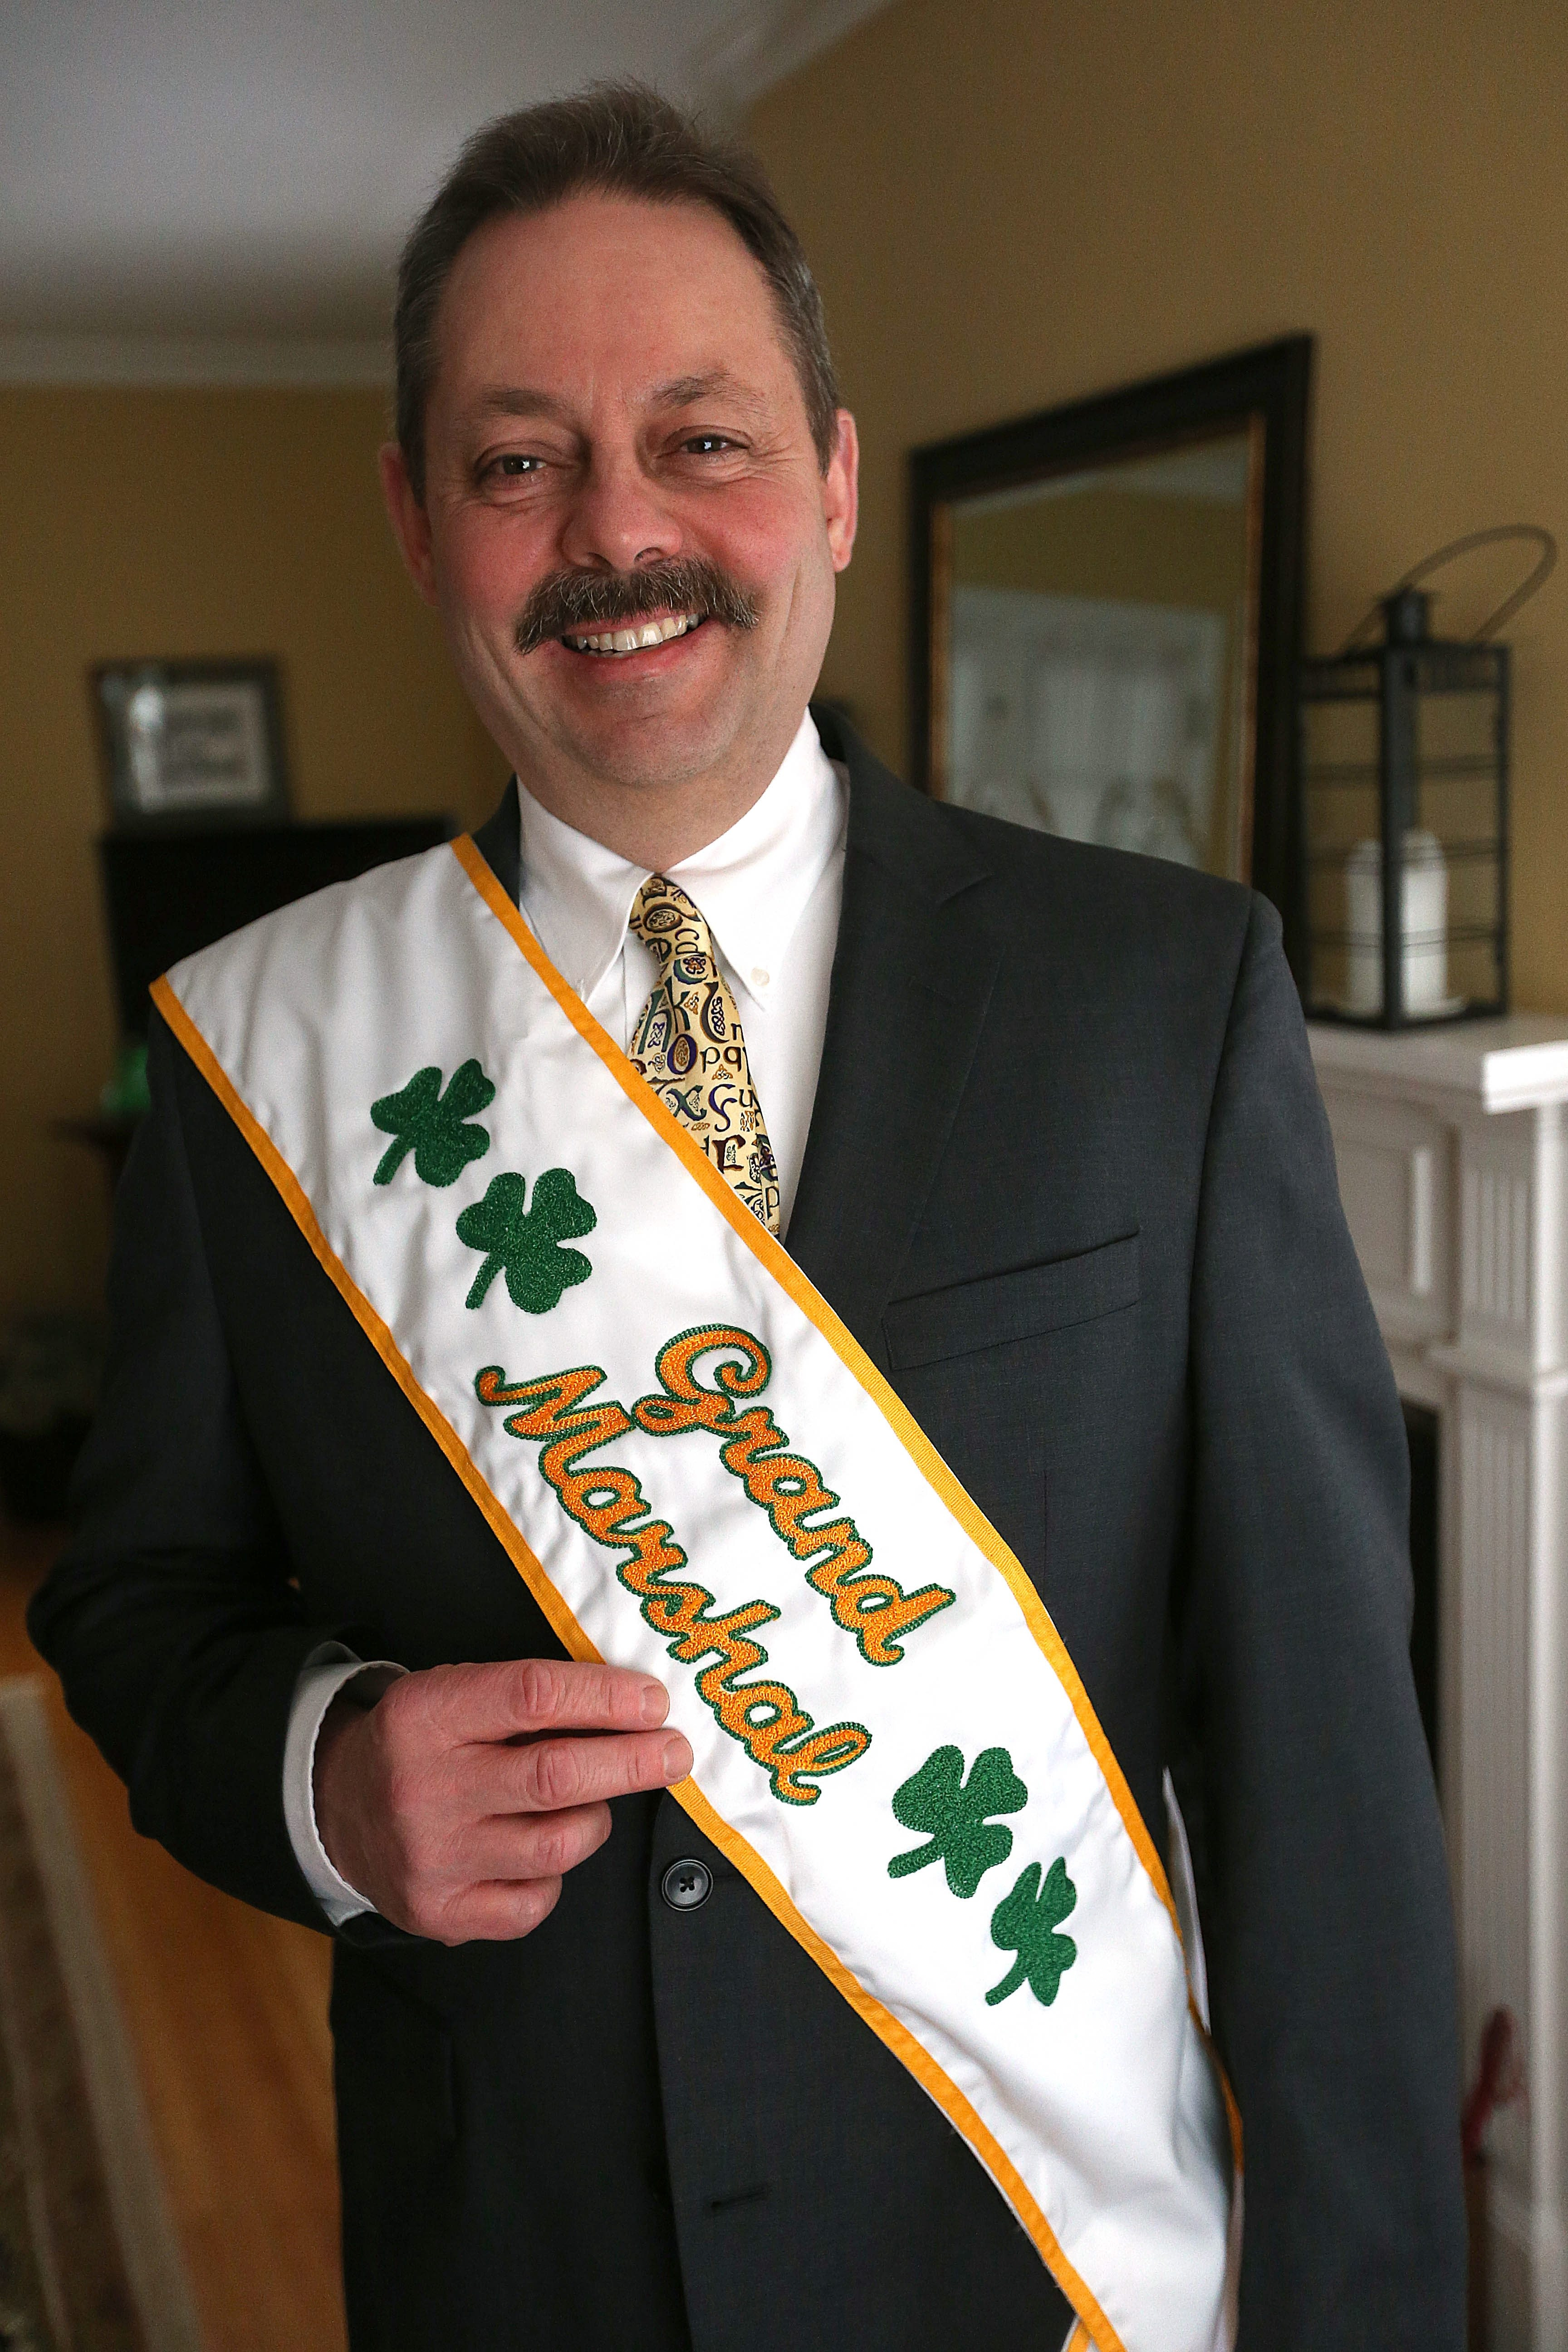 Chris Laffler, who has worked for many years on city parade, is grand marshal for first time.